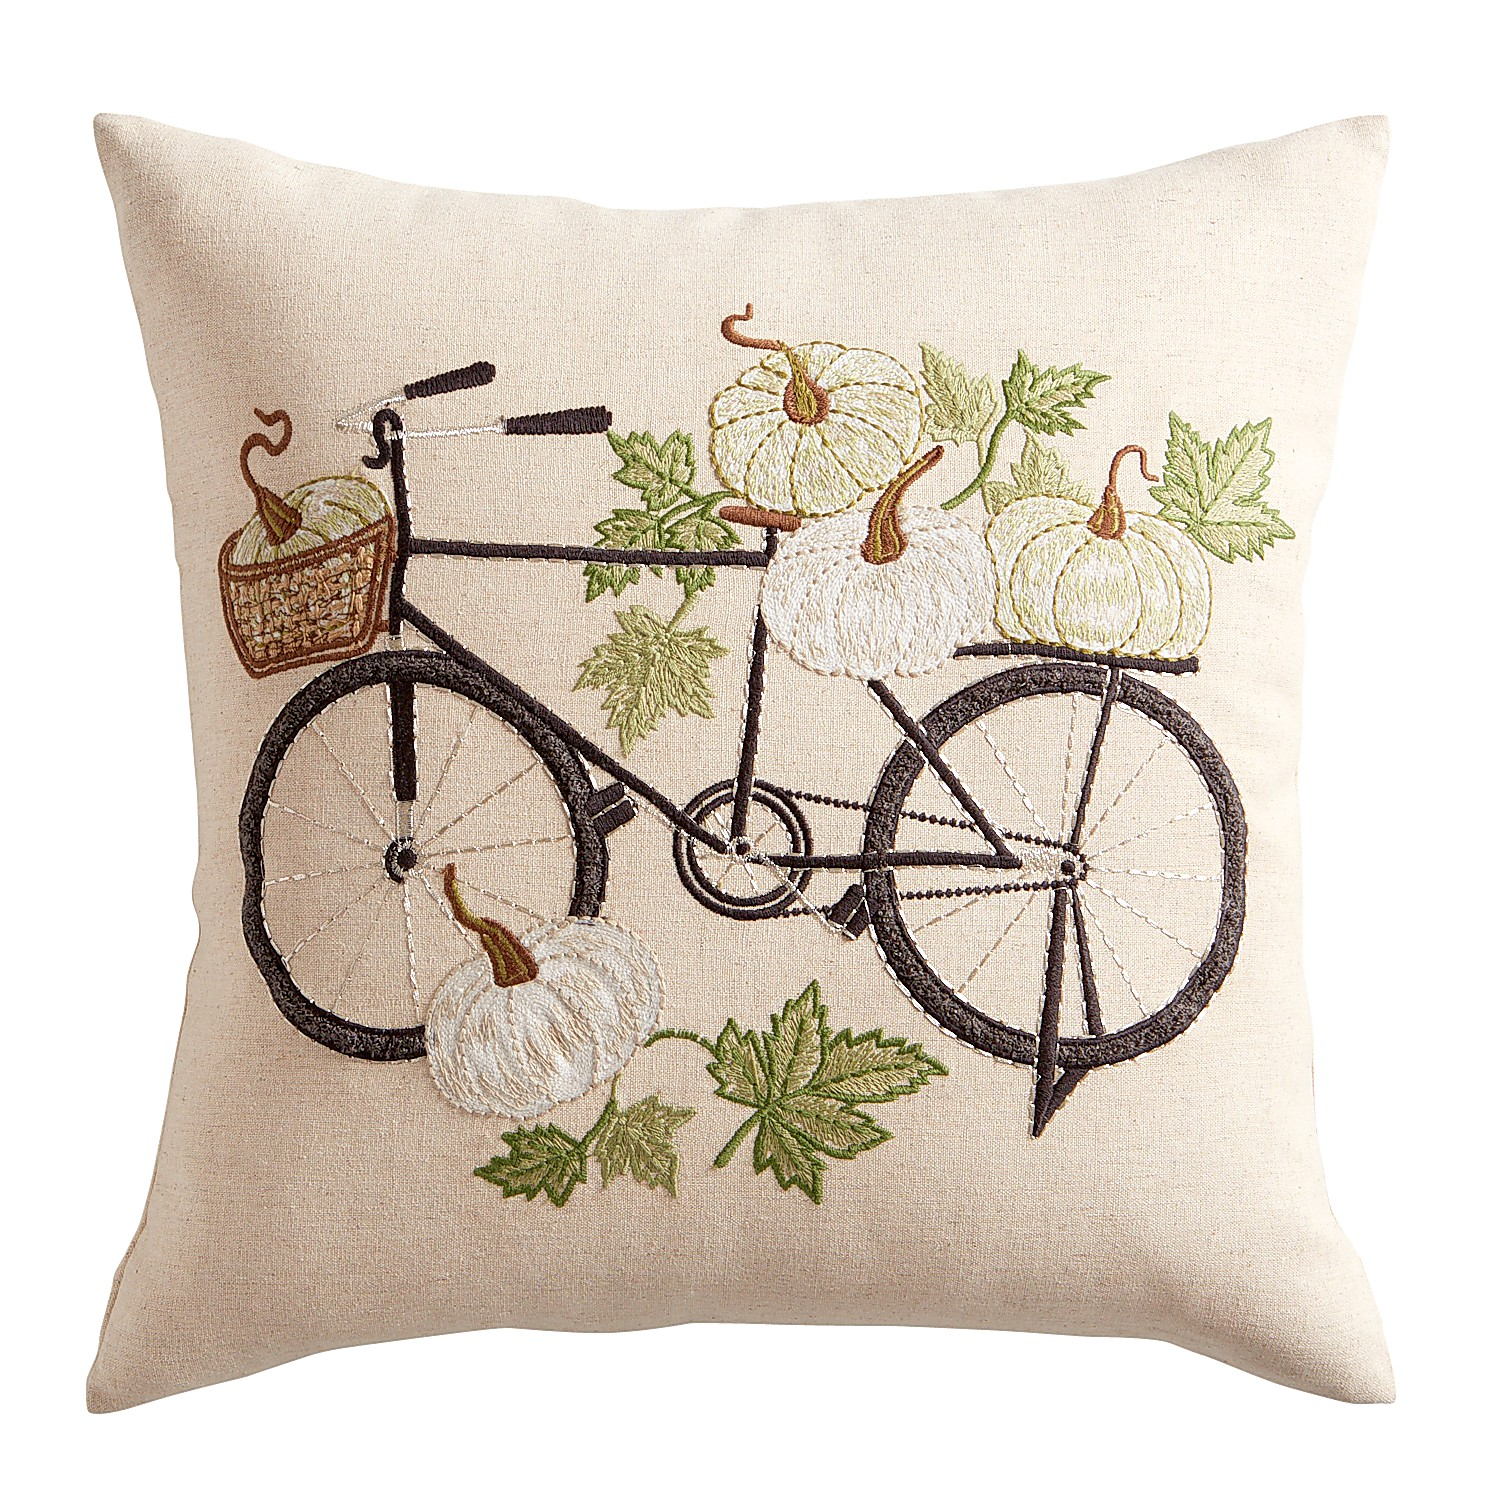 Embroidered Pumpkin Bicycle  Pillow